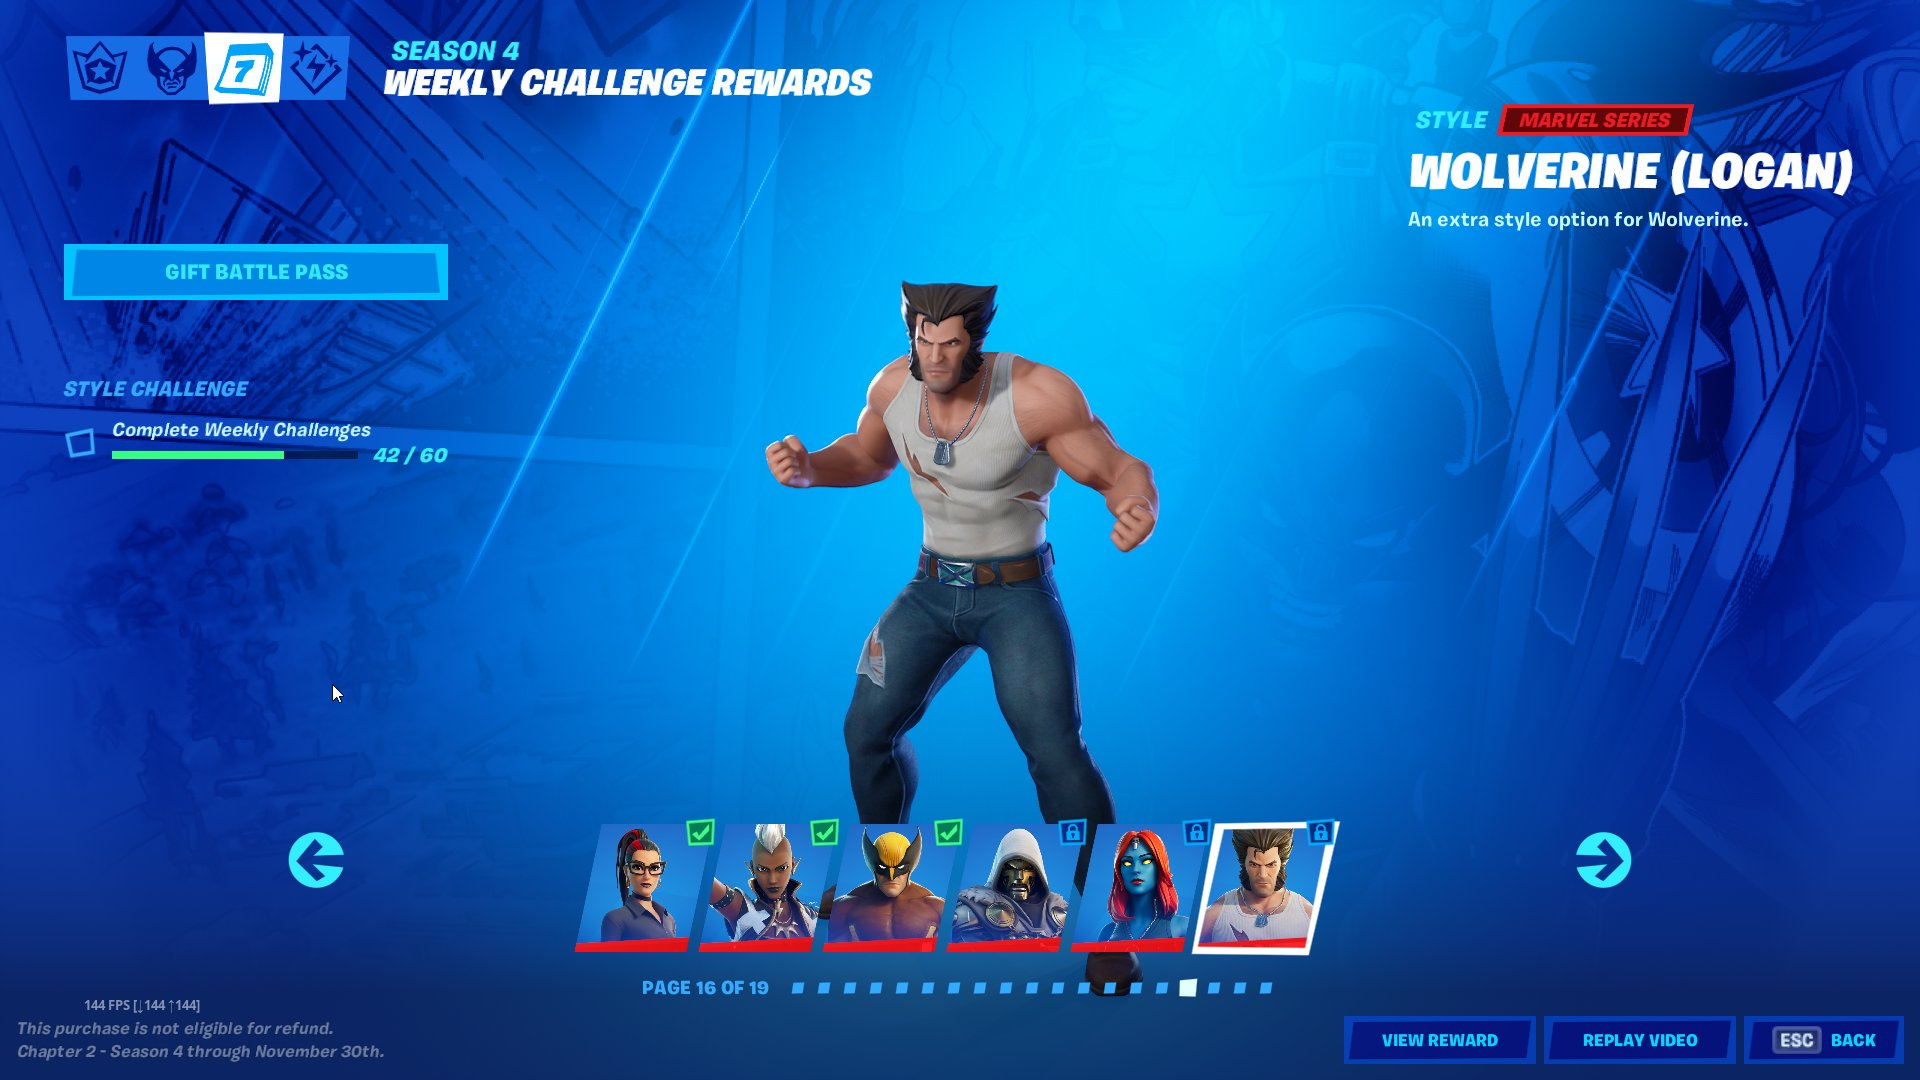 Firemonkey Fortnite Intel On Twitter The Logan Variant For Wolverine Officially Shows Up In The Battle Pass Weekly Challenge Reward Tab Now